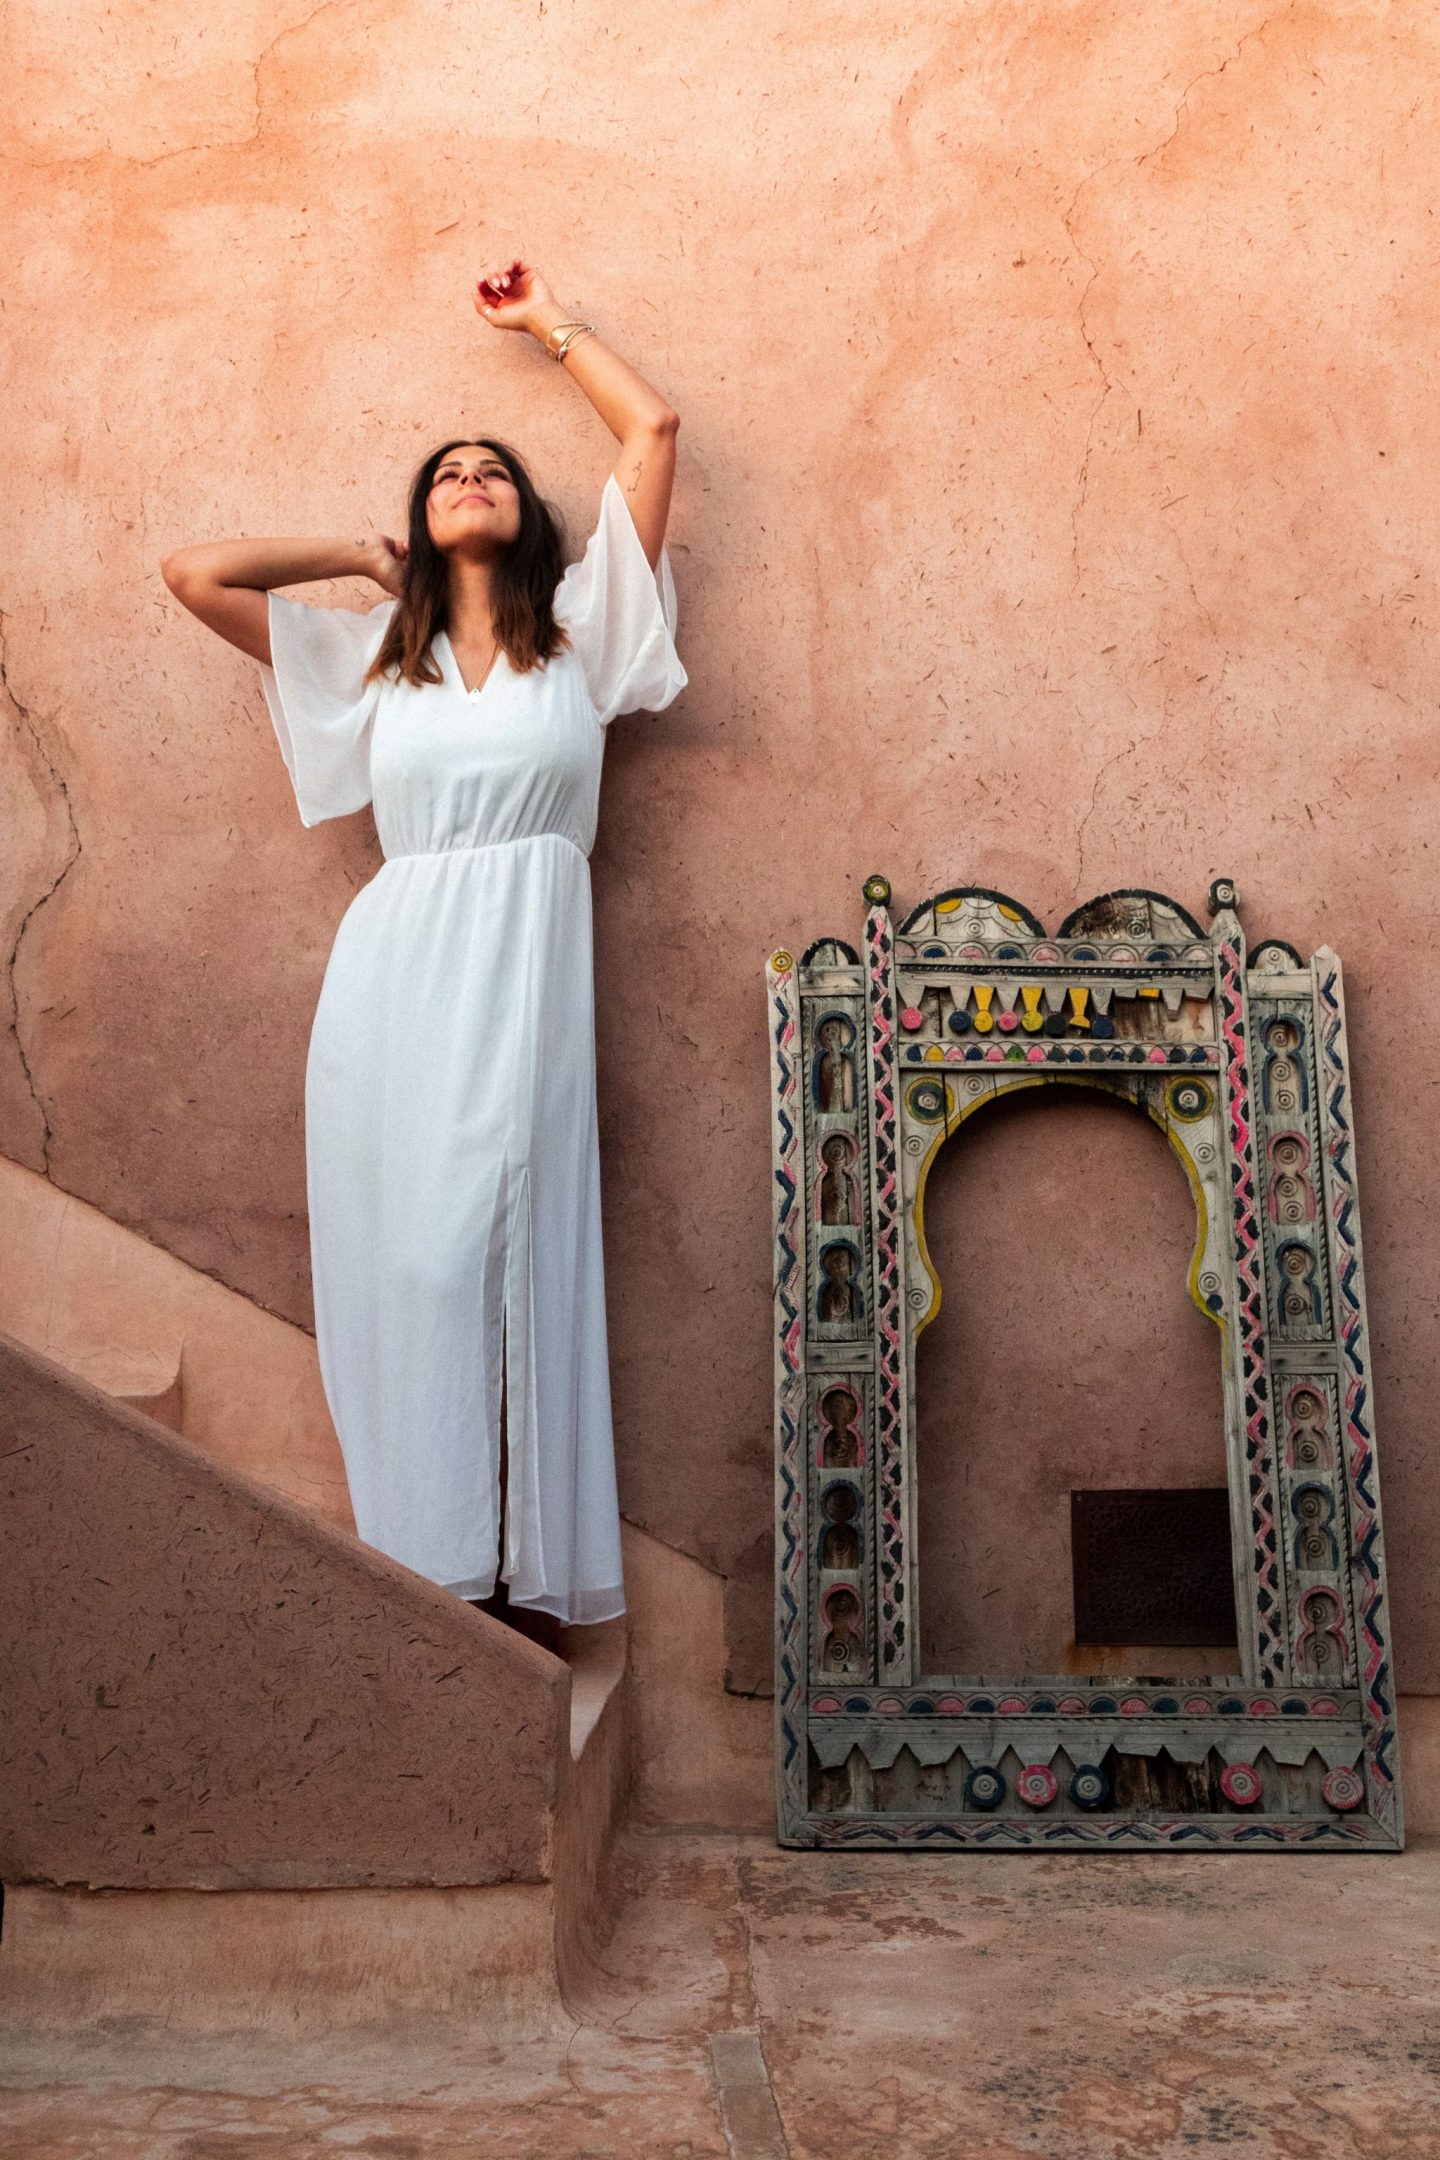 Kristina standing by the wall at Riad Up, Marrakesh, Morocco